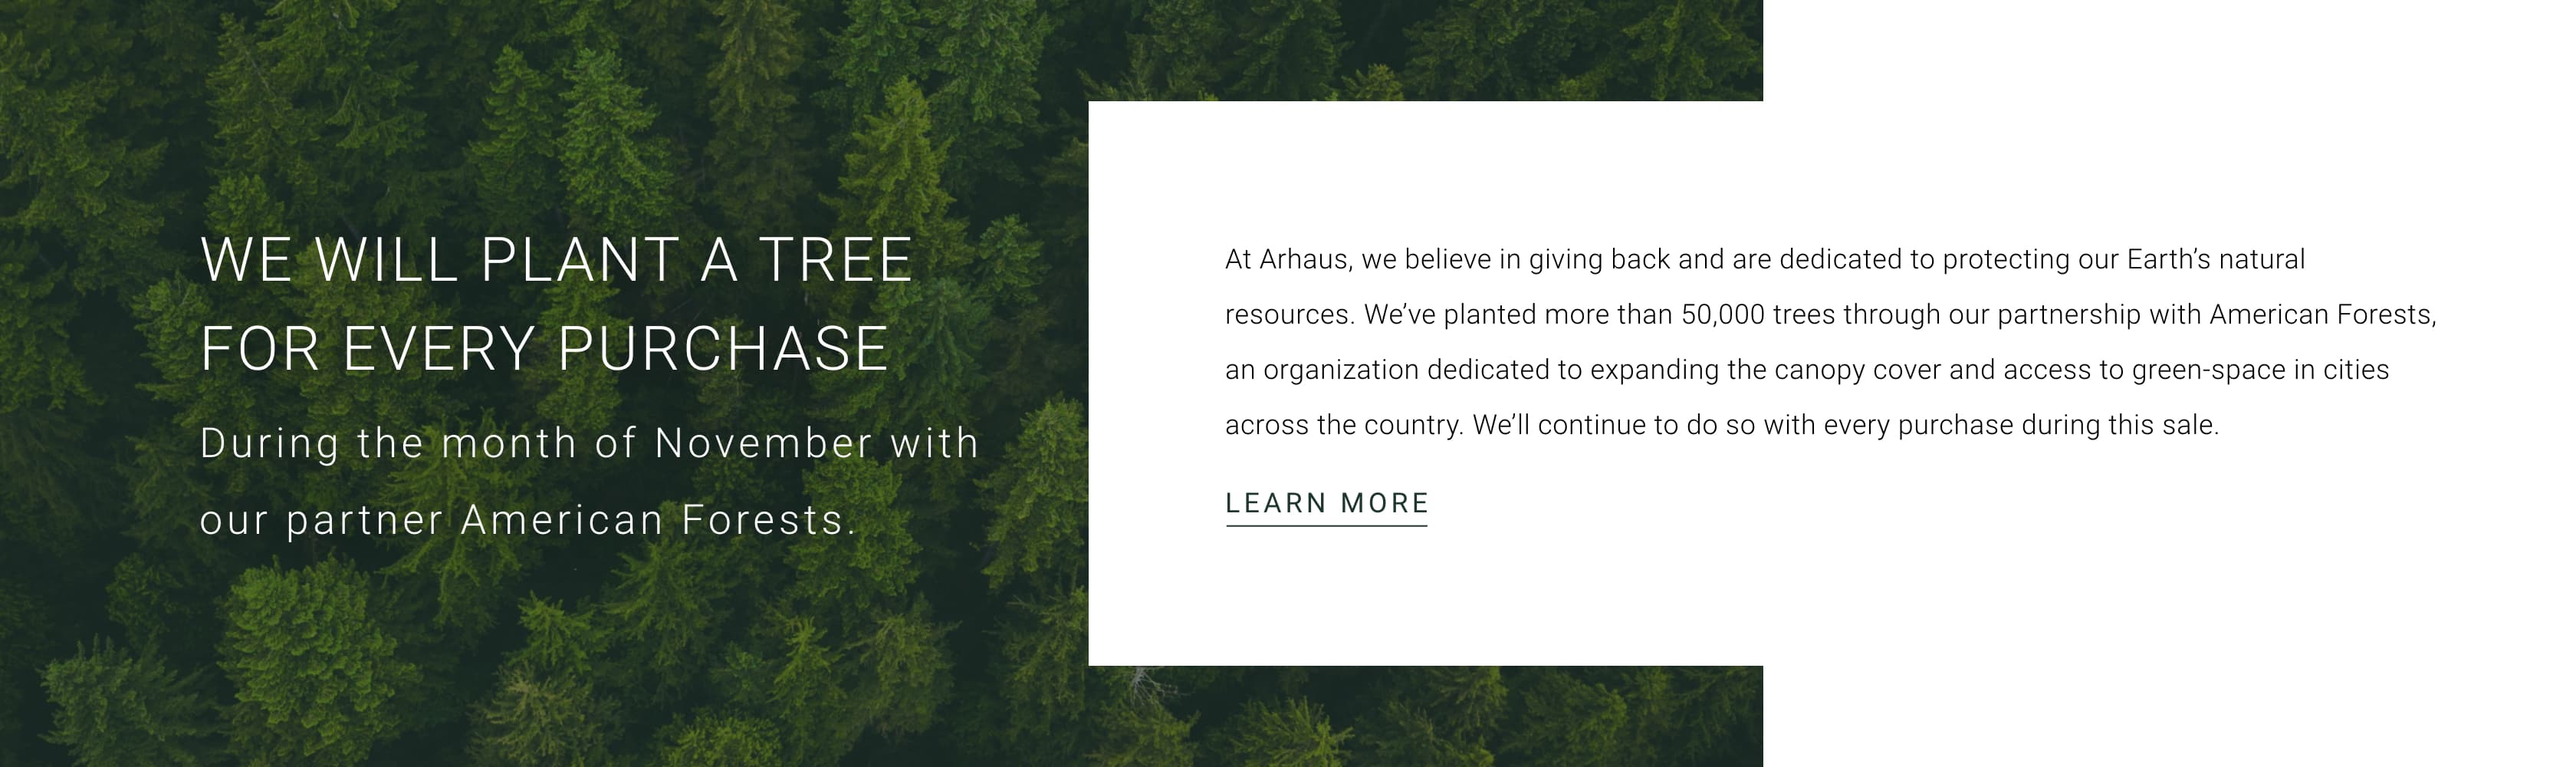 Learn More About American Forests